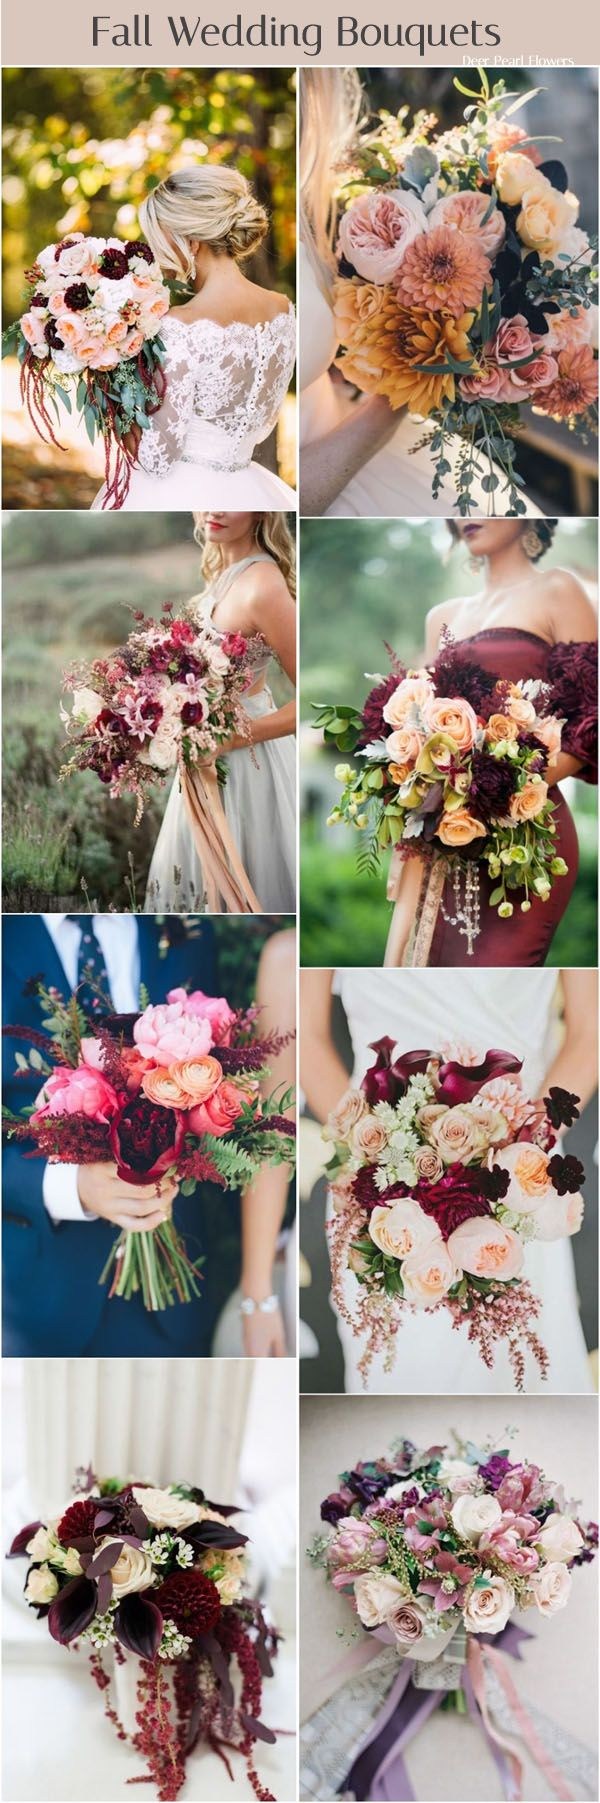 fall wedding bouquet flower ideas / http://www.deerpearlflowers.com/fall-wedding-ideas-for-2017/2/